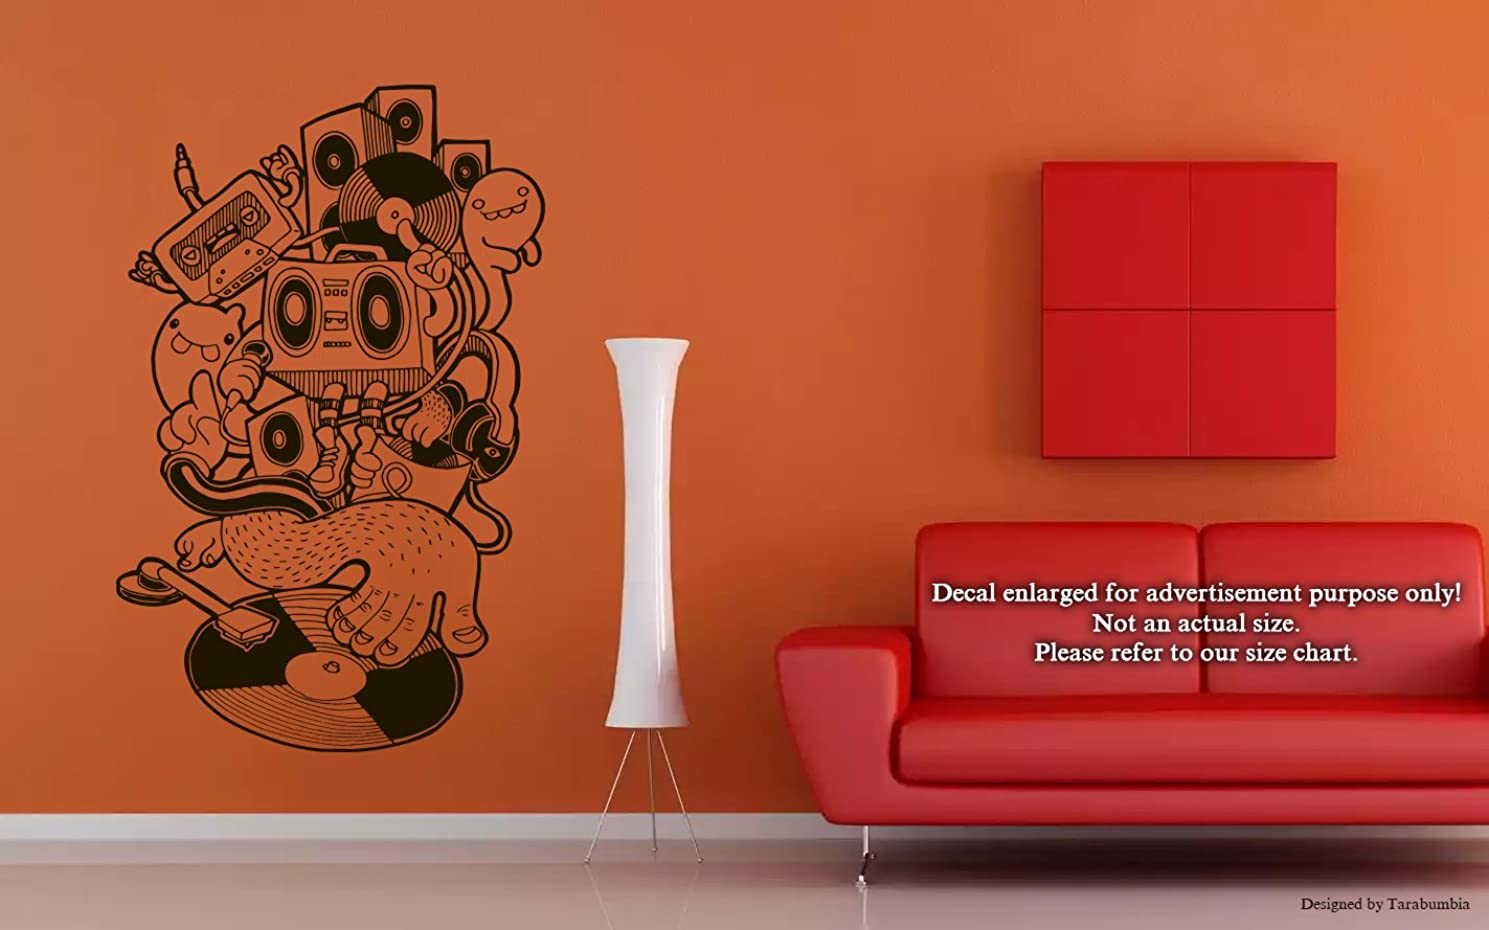 Music DJ Vinyl Records VCR Wall Decals Stickers Decorative Design Ideas For Your Home or Office Walls Removable Vinyl Murals EC-0082